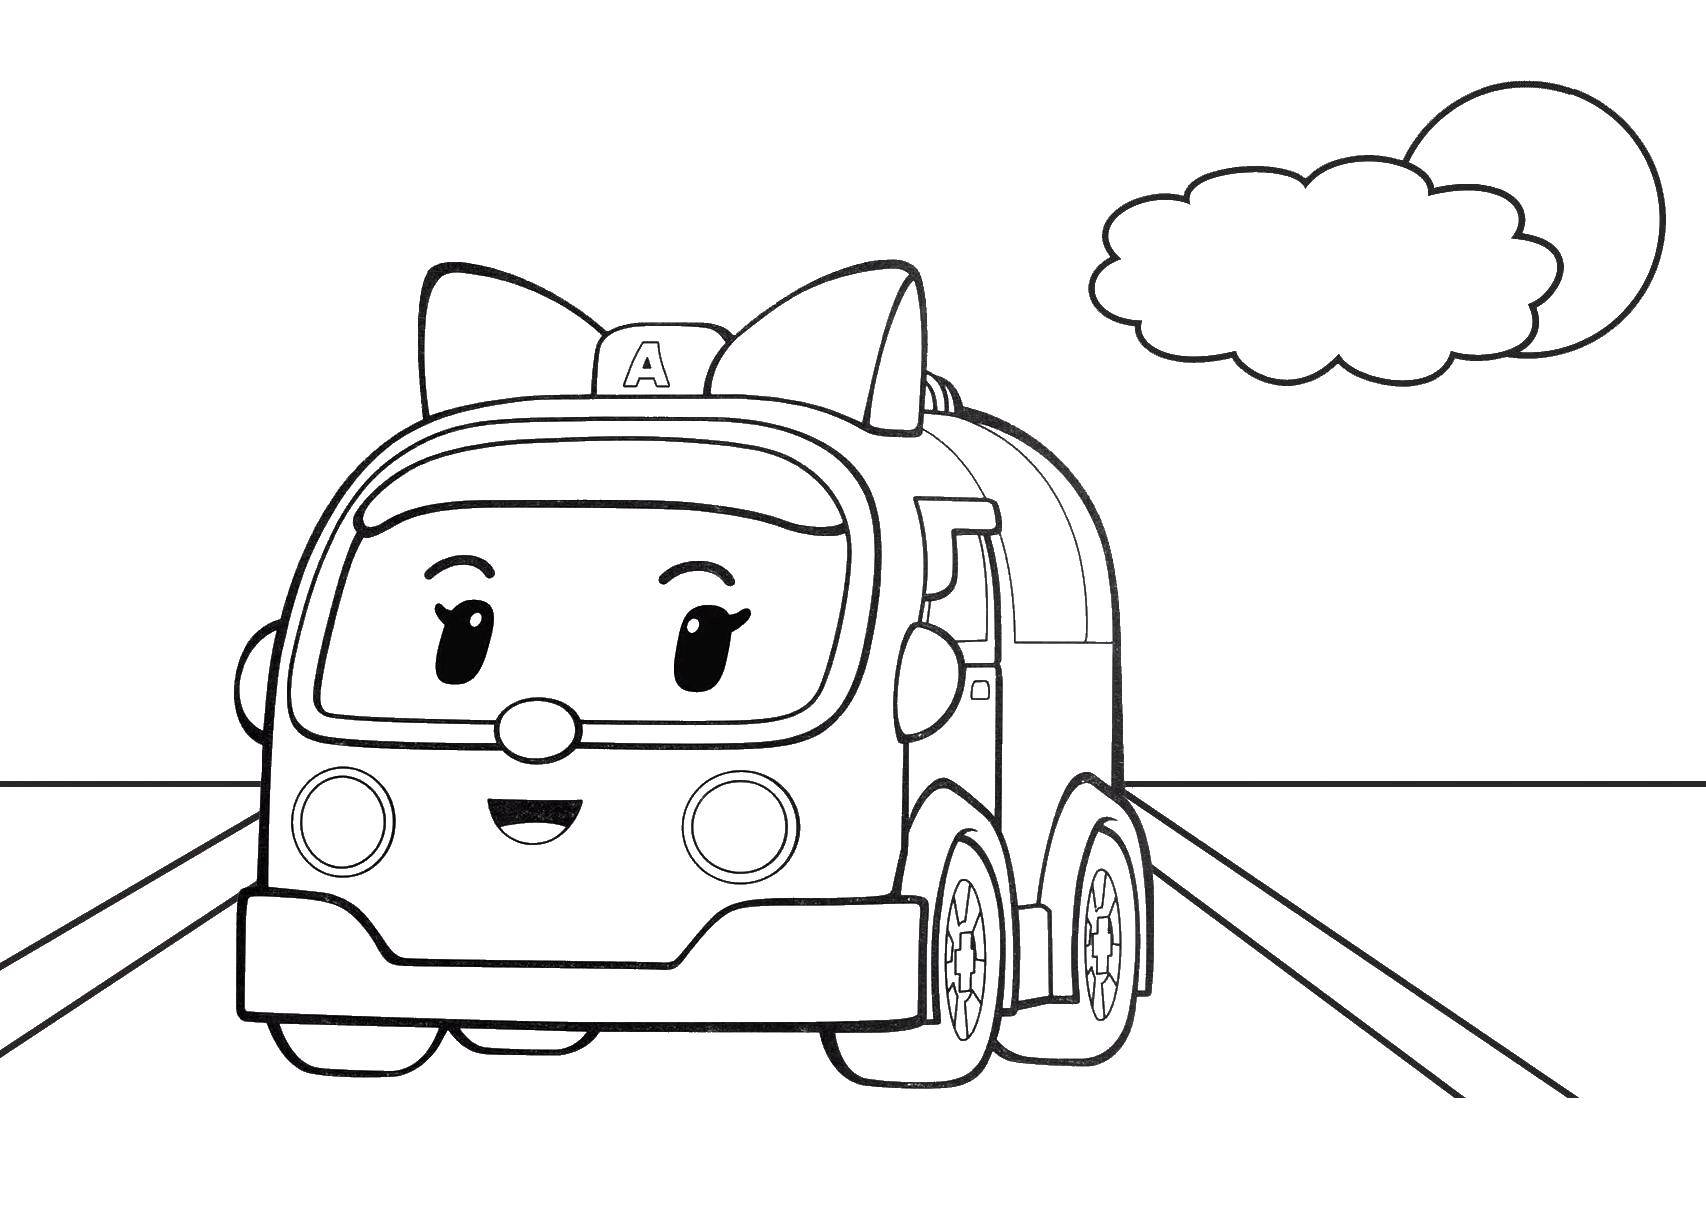 Coloring sheet robocar poli Download Rome.  Print ,coloring,